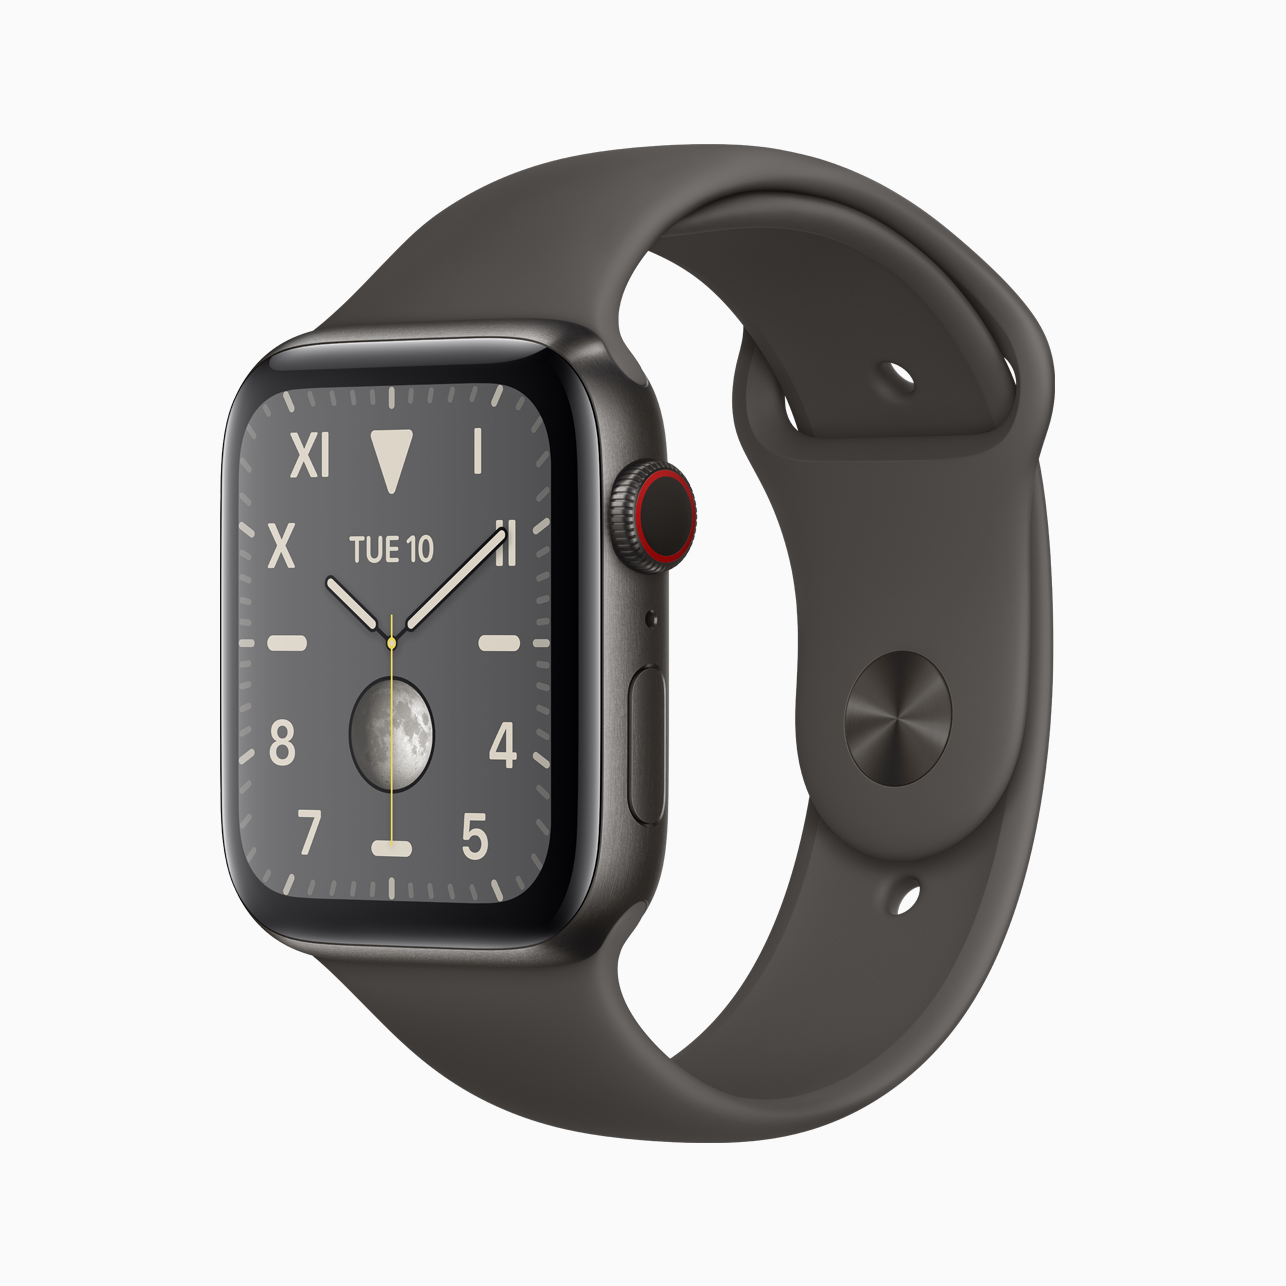 Apple Watch Series 5 DLC titanium